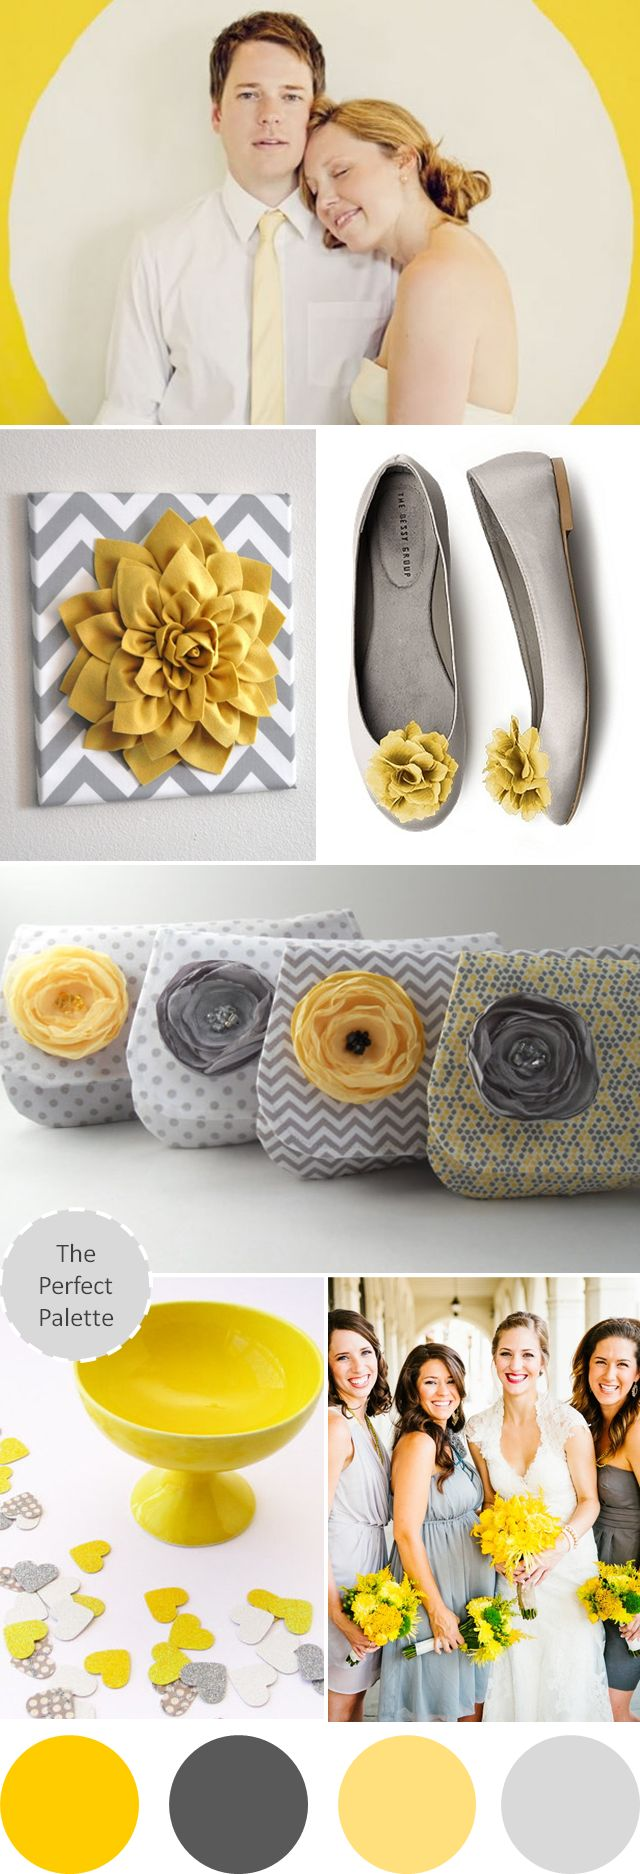 Shades of Yellow + Gray http://www.theperfectpalette.com/2013/03/colors-i-love-shades-of-yellow-gray.html